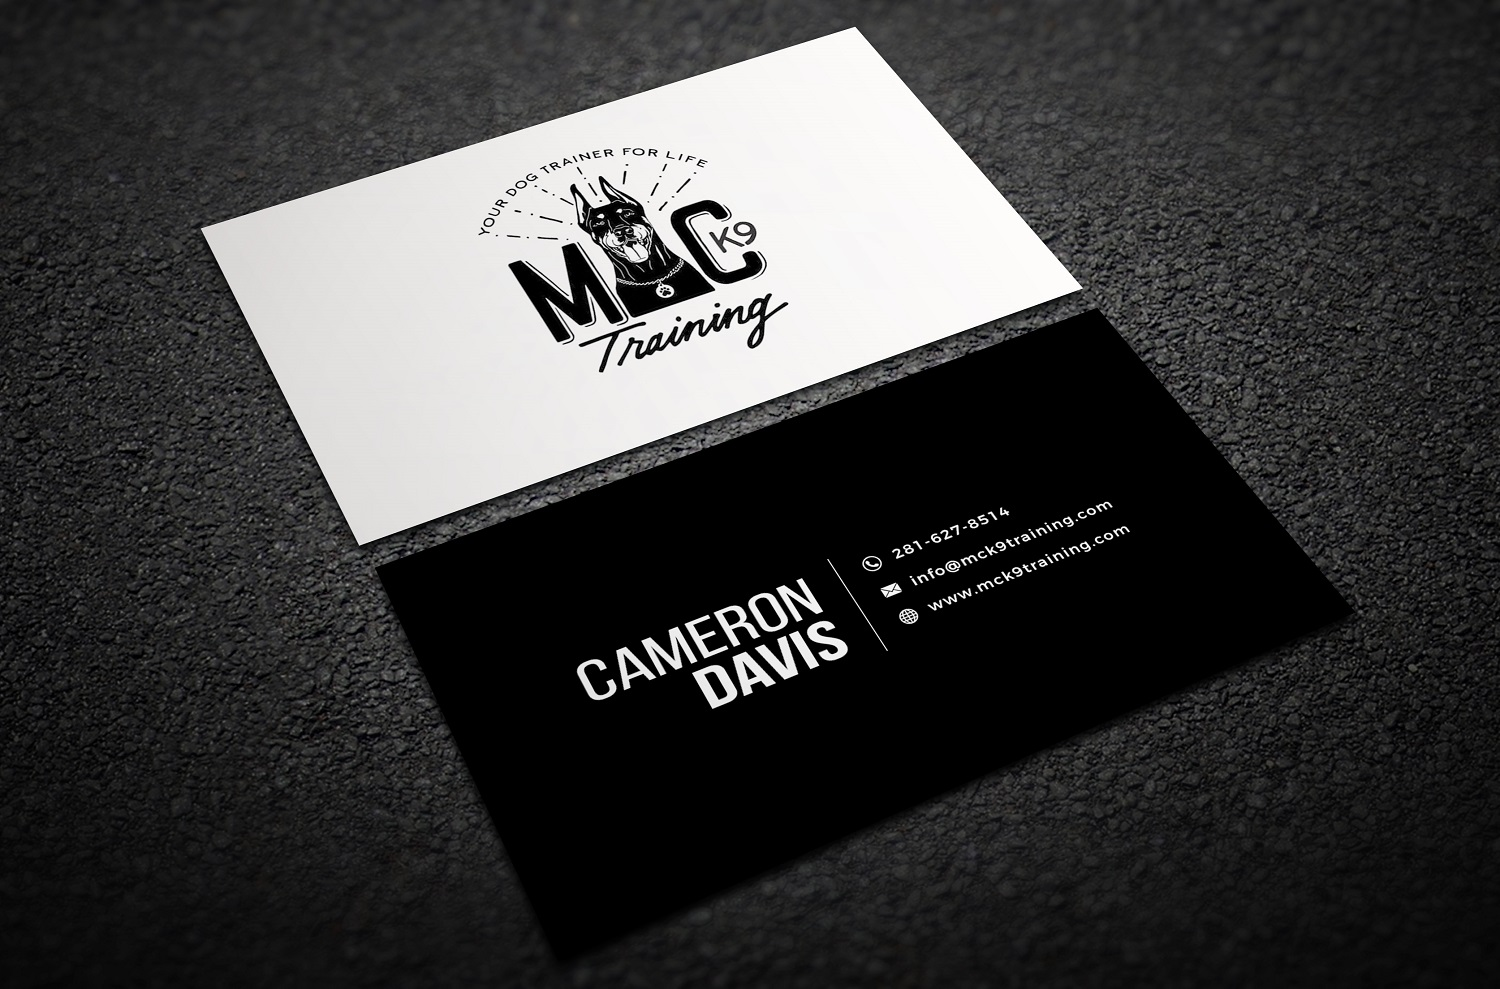 Serious modern dog training business card design for mc k9 business card design by thelogohouse for mc k9 training design 16328585 colourmoves